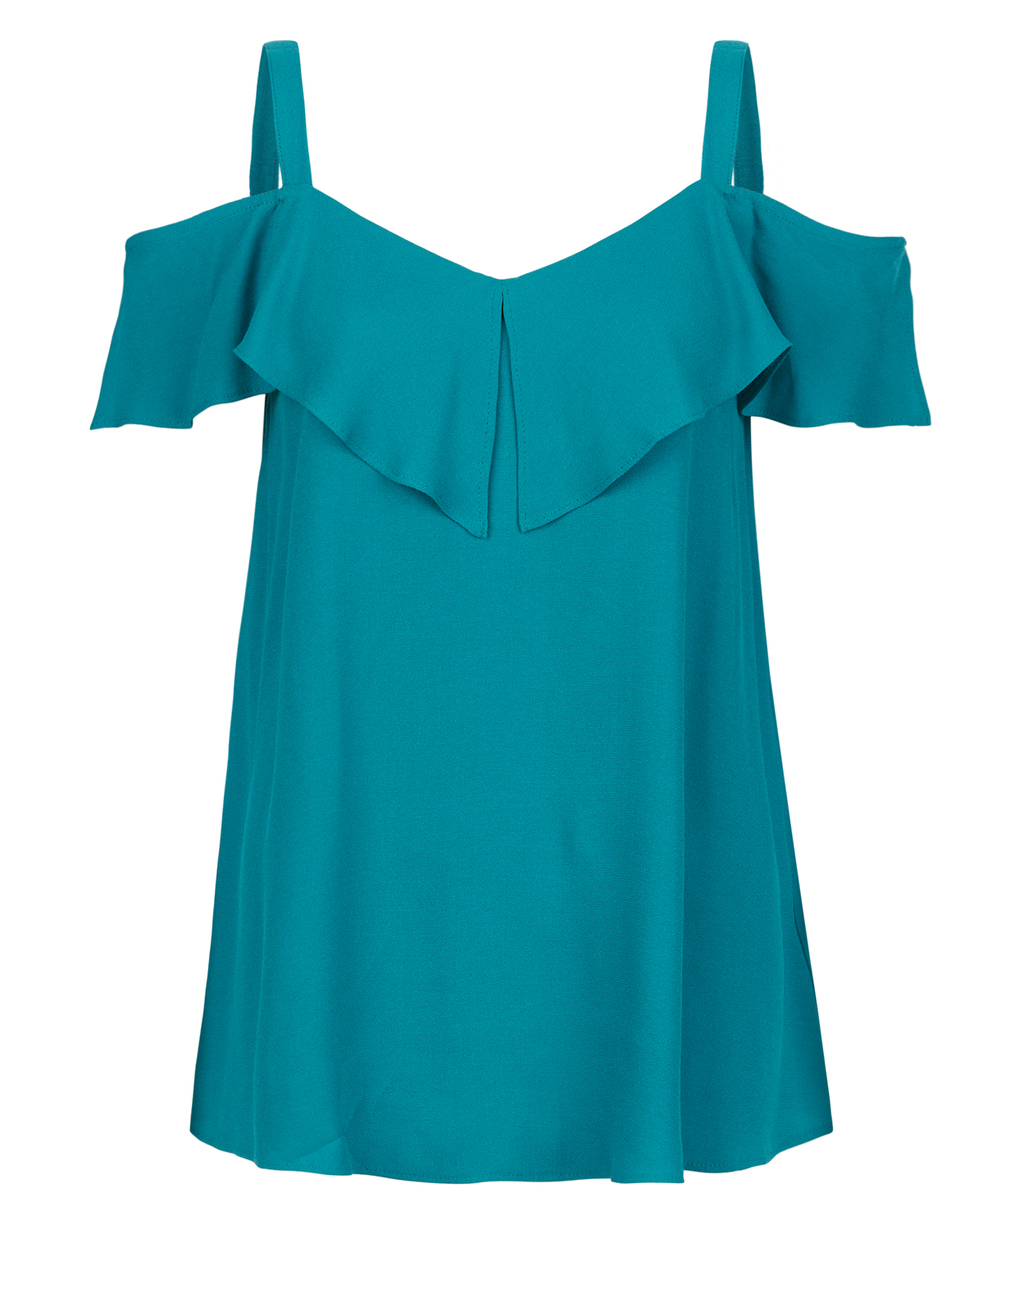 Lana Cold Shoulder Top - neckline: low v-neck; pattern: plain; predominant colour: turquoise; occasions: casual; length: standard; style: top; fibres: viscose/rayon - 100%; fit: body skimming; sleeve length: short sleeve; sleeve style: standard; pattern type: fabric; texture group: other - light to midweight; season: s/s 2016; wardrobe: highlight